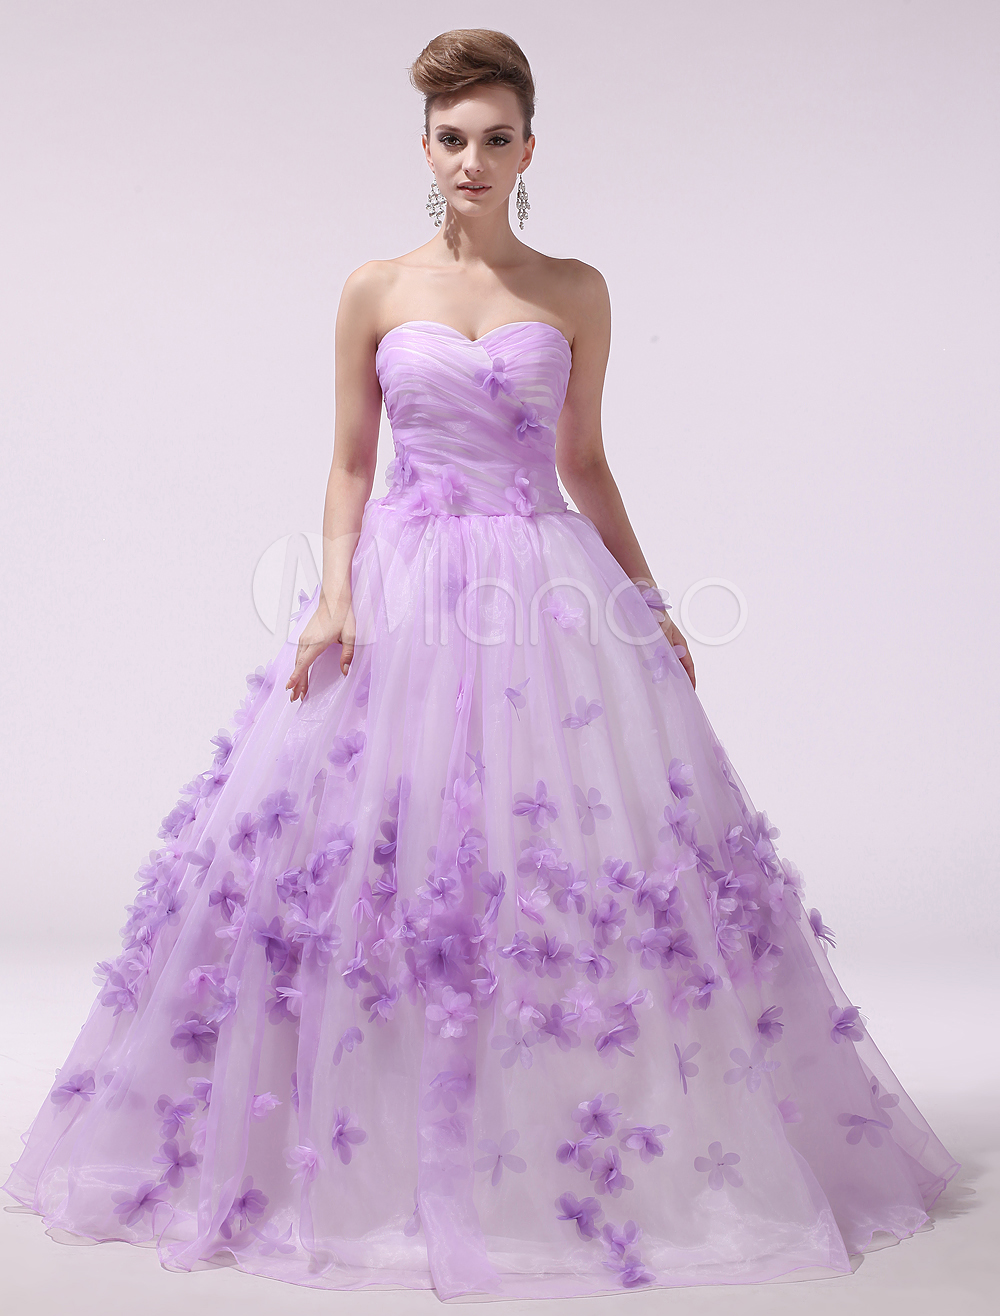 Lilac Wedding Dress 3D Flower Bridal Gown Organza Strapless Sweetheart Lace Up Ruched  Bridal Dress  Milanoo